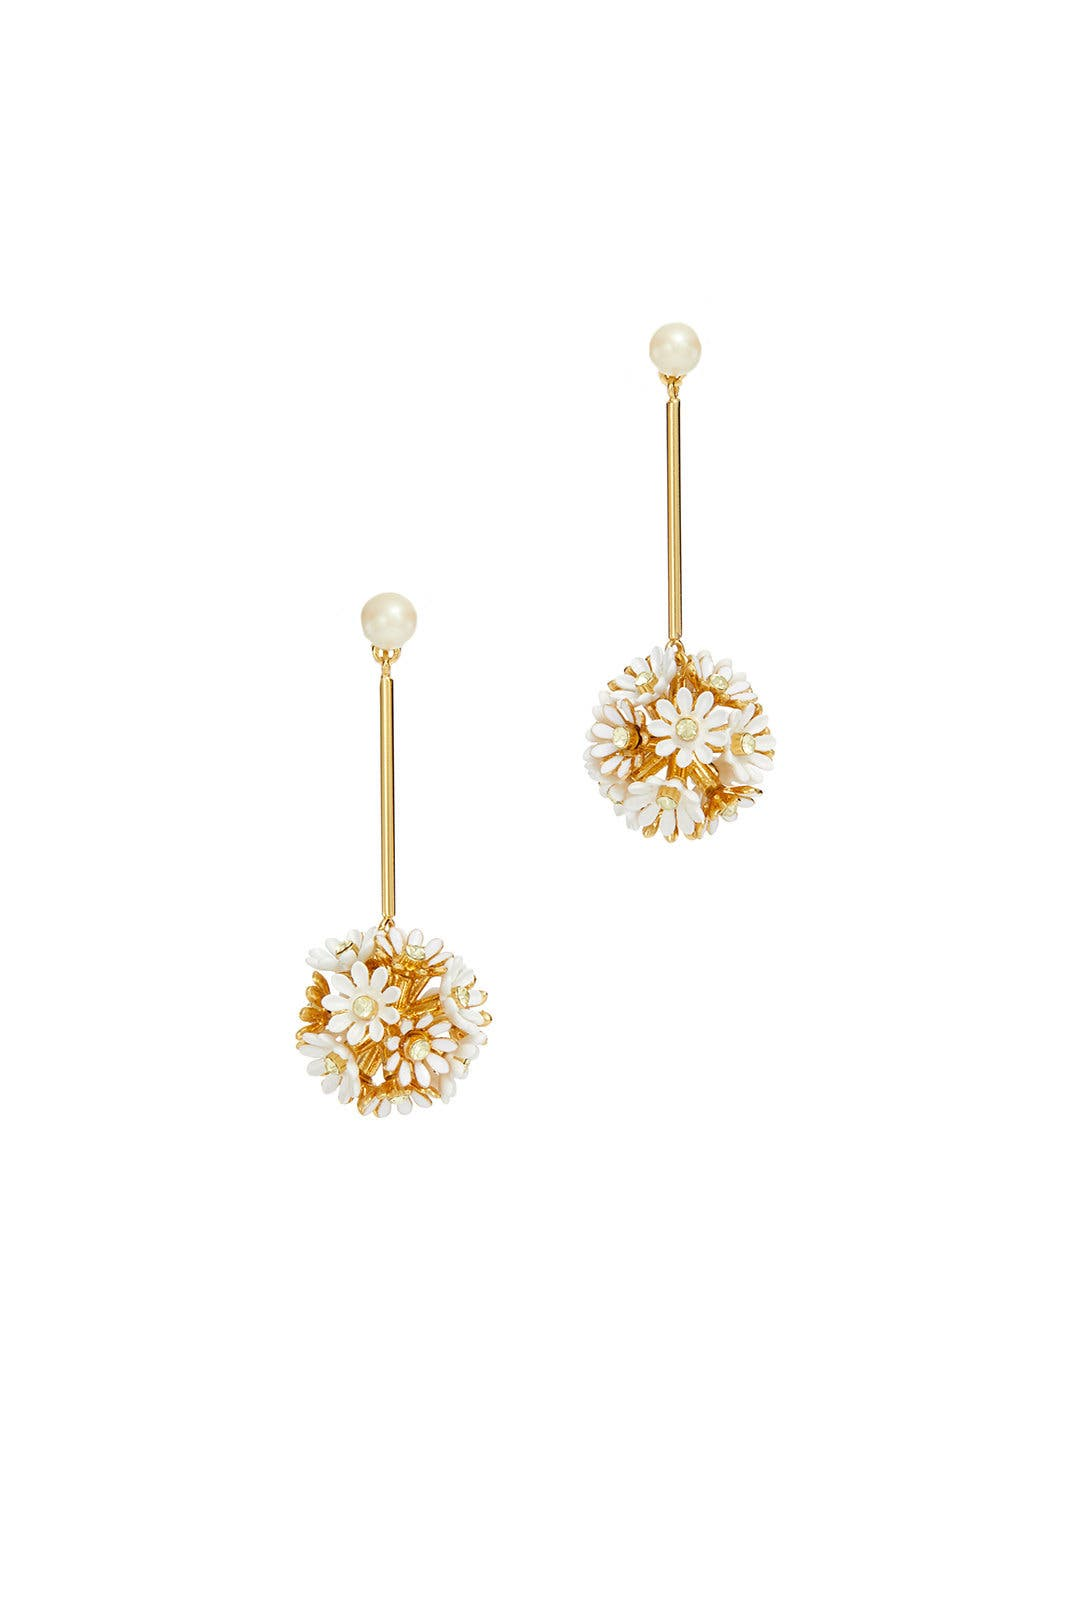 3f19164454d09 kate spade new york accessories White Daisy Drop Earrings